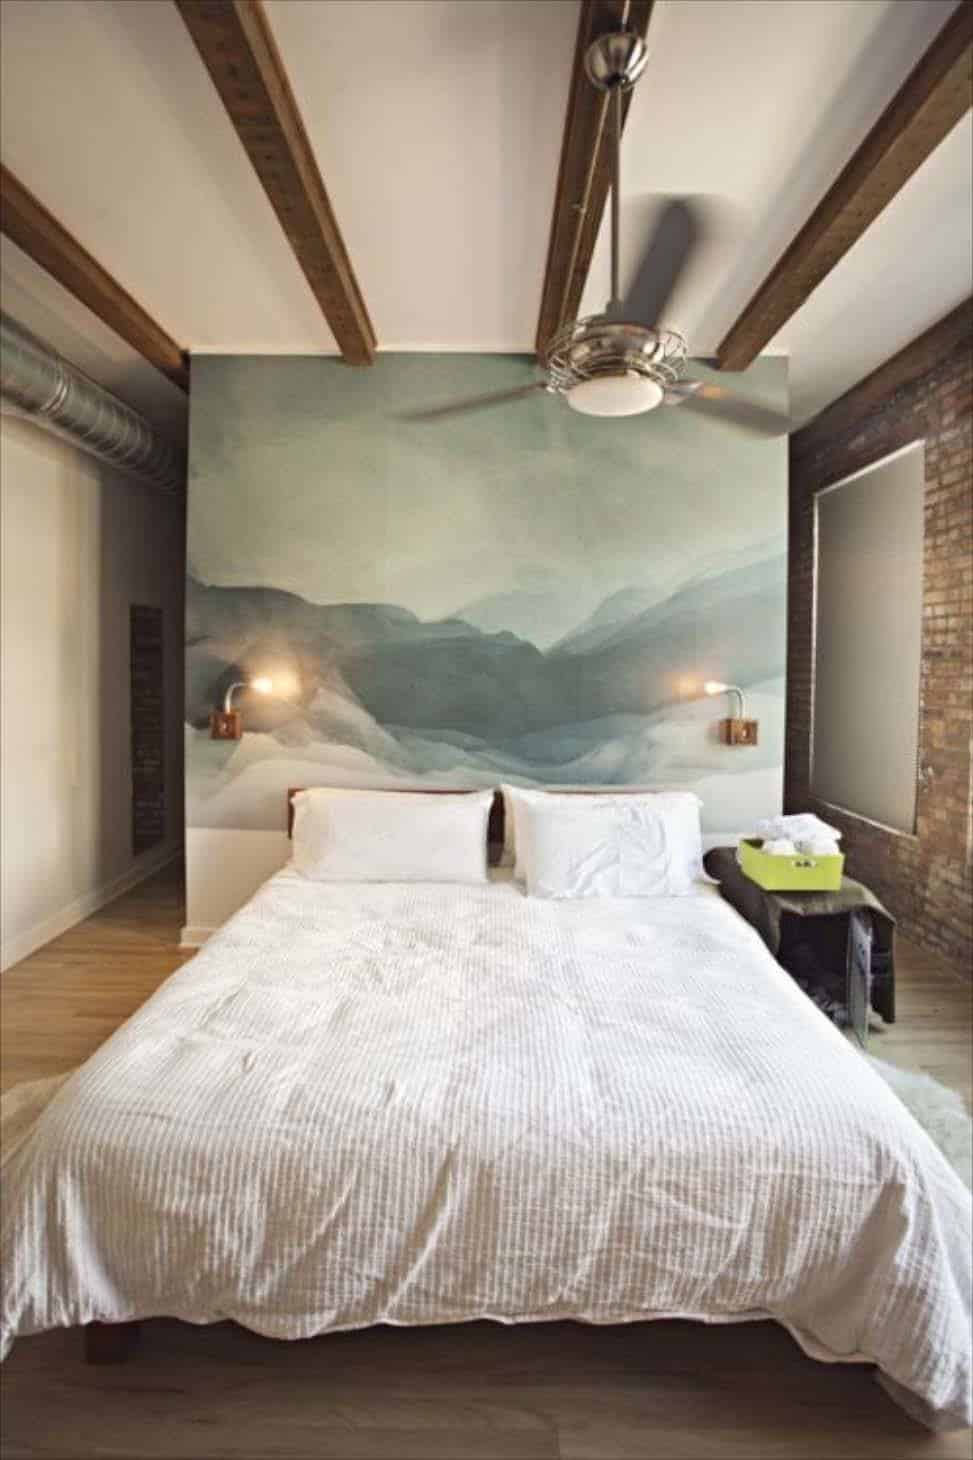 Bedroom Headboard Alternatives-26-1 Kindesign